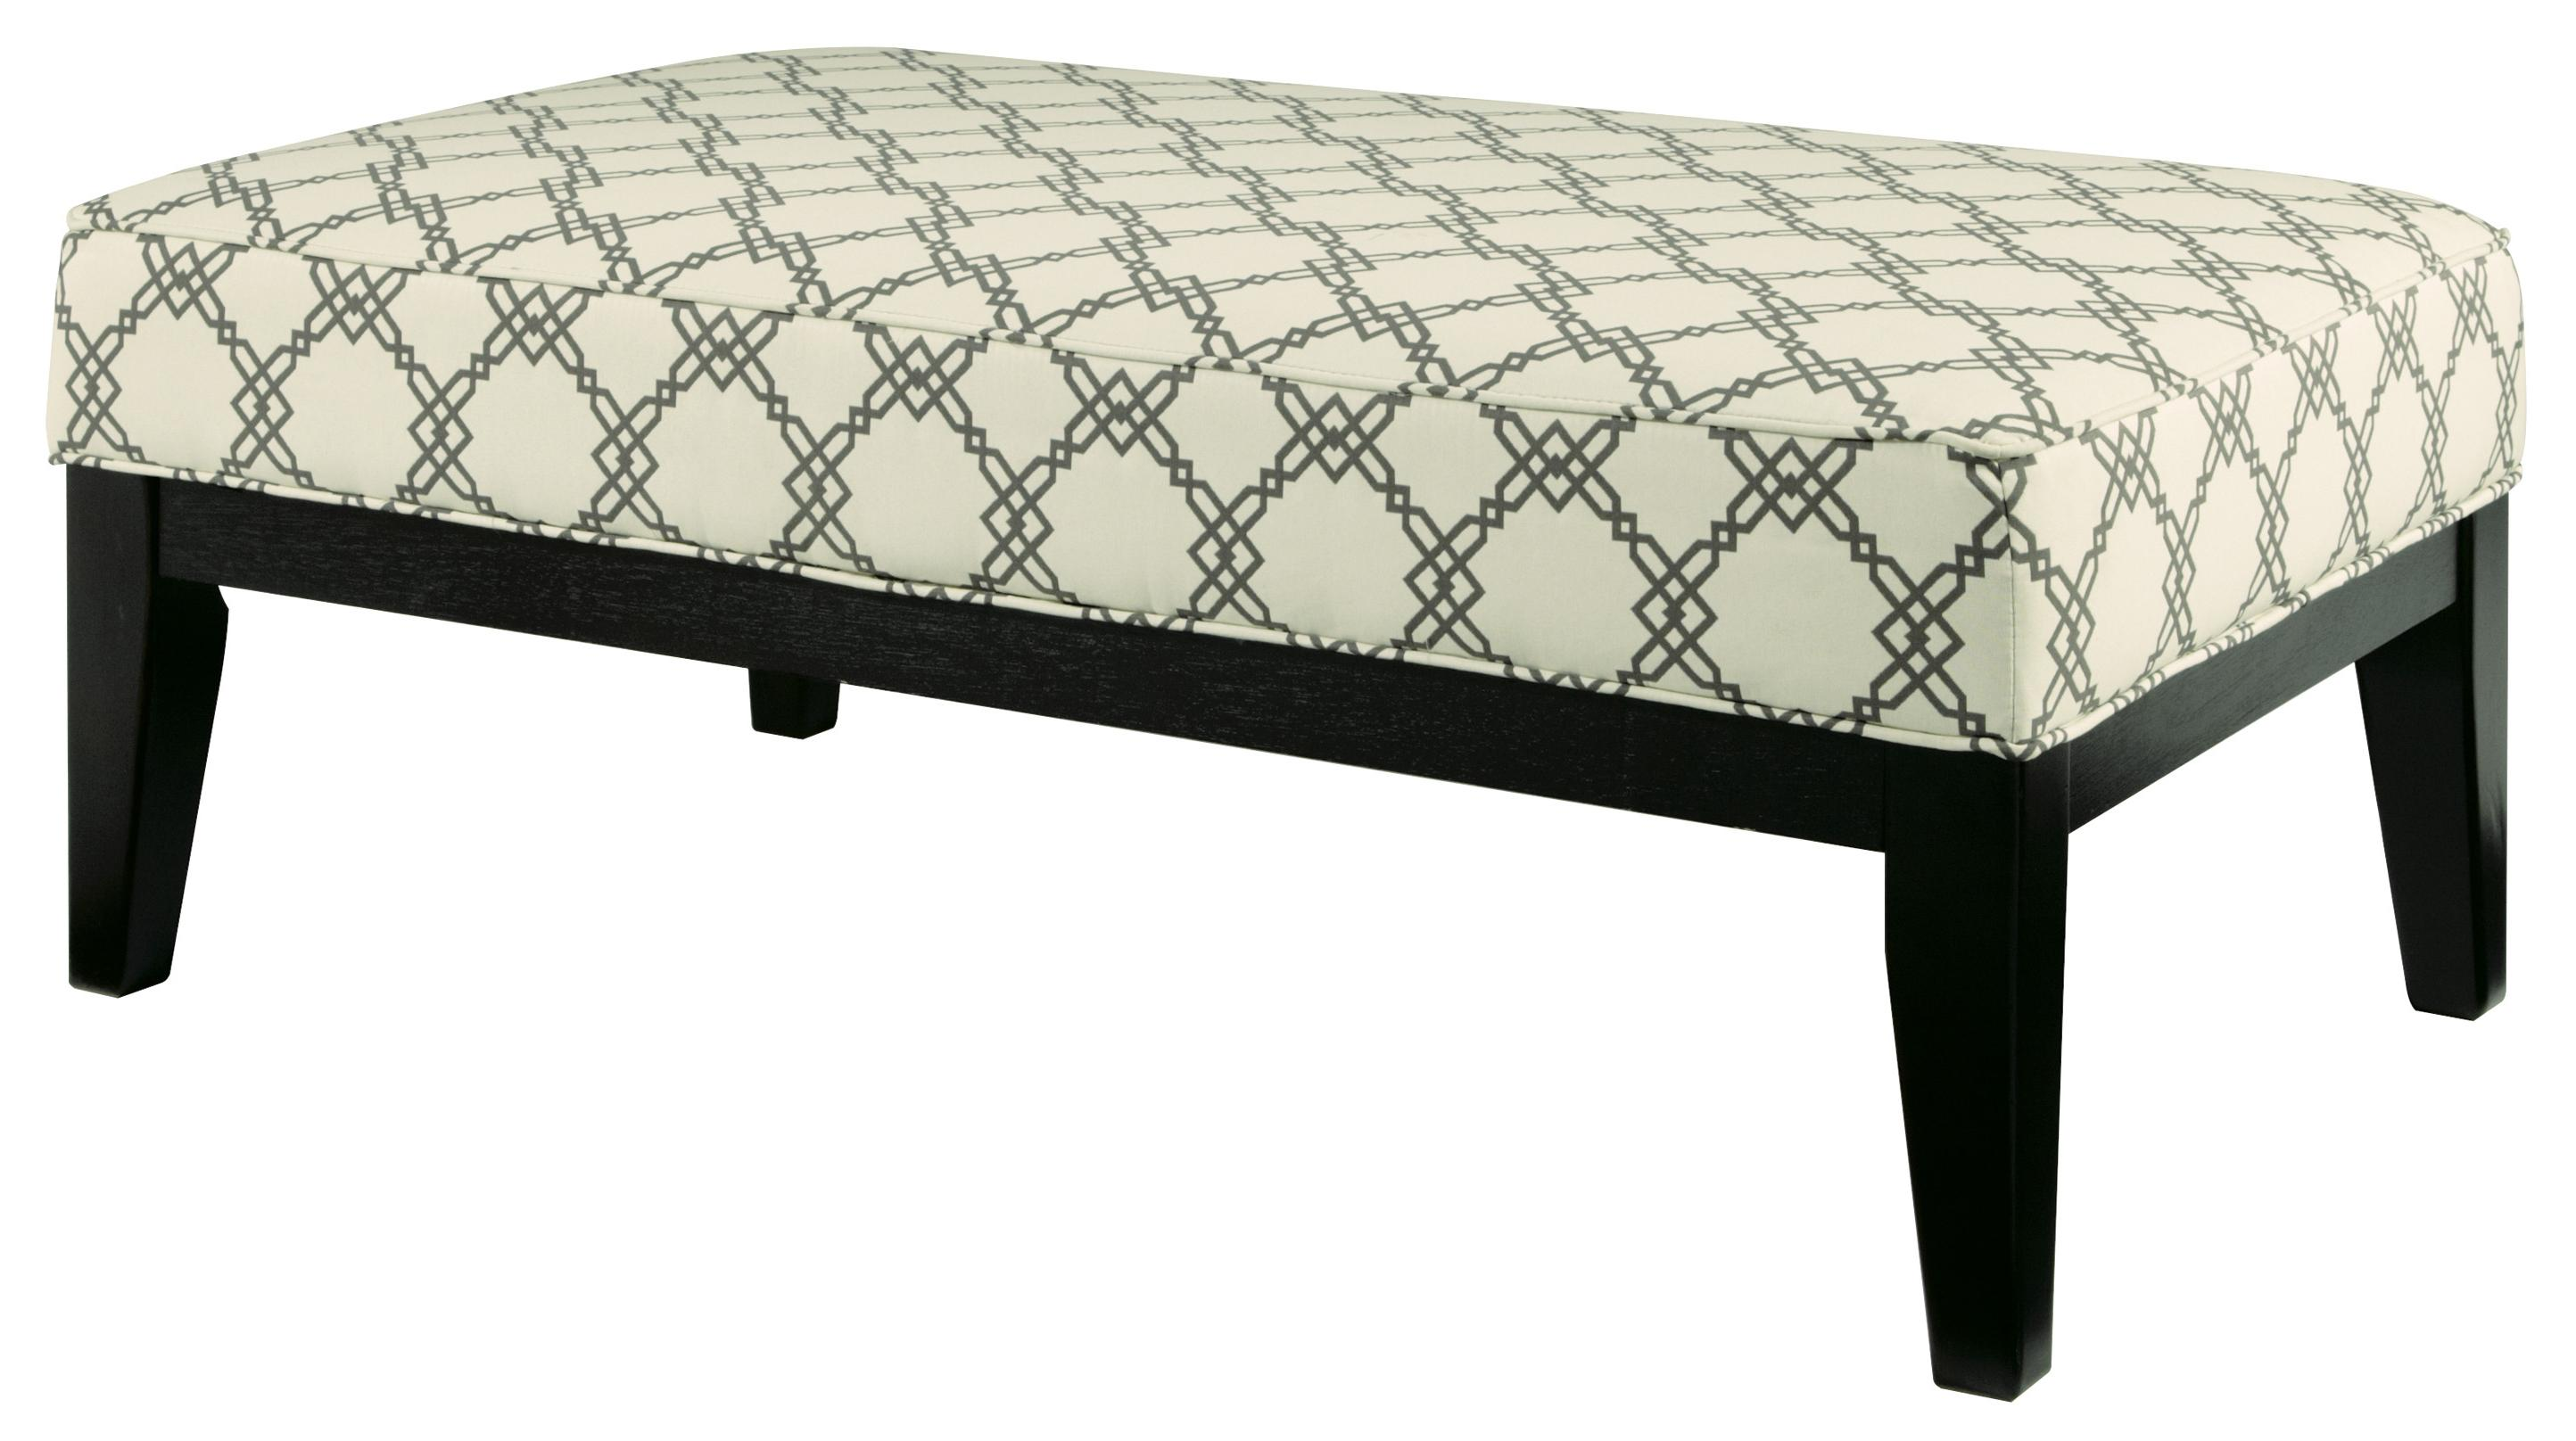 Signature Design by Ashley Daystar - Seafoam Oversized Accent Ottoman - Item Number: 2820008